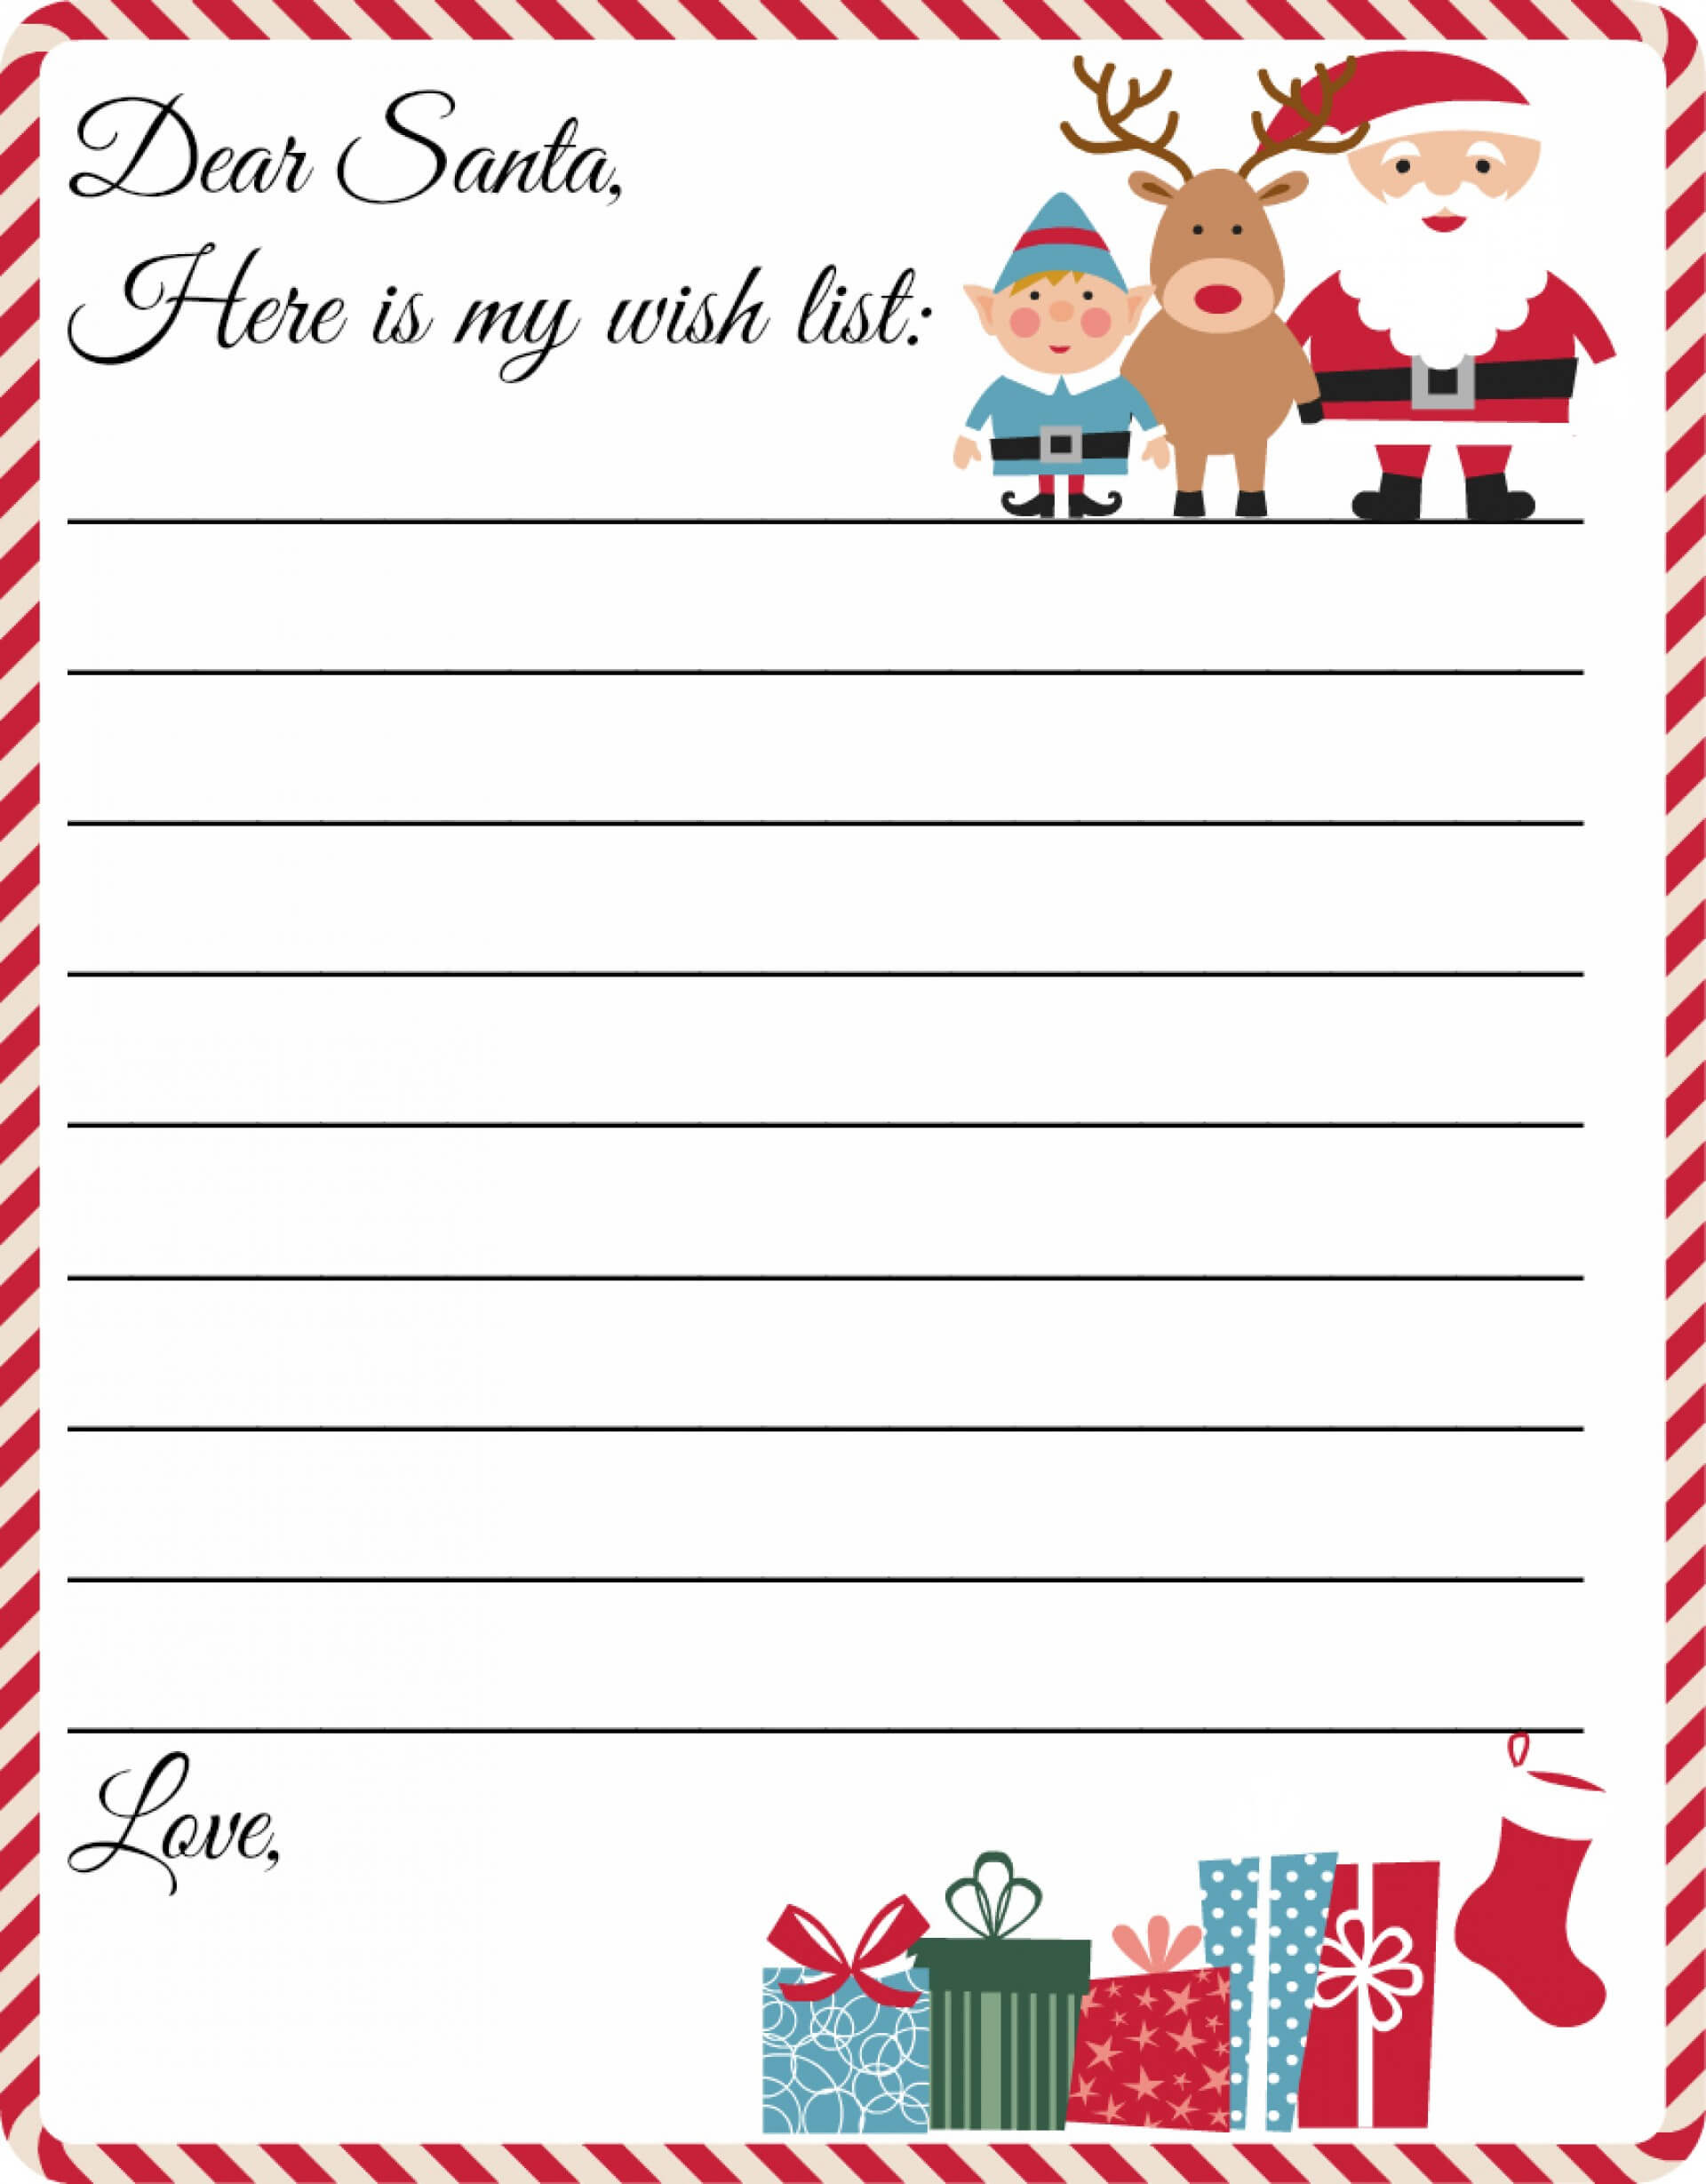 016 Ms Word Letter From Santa Template Letters Ideas To Regarding Santa Letter Template Word